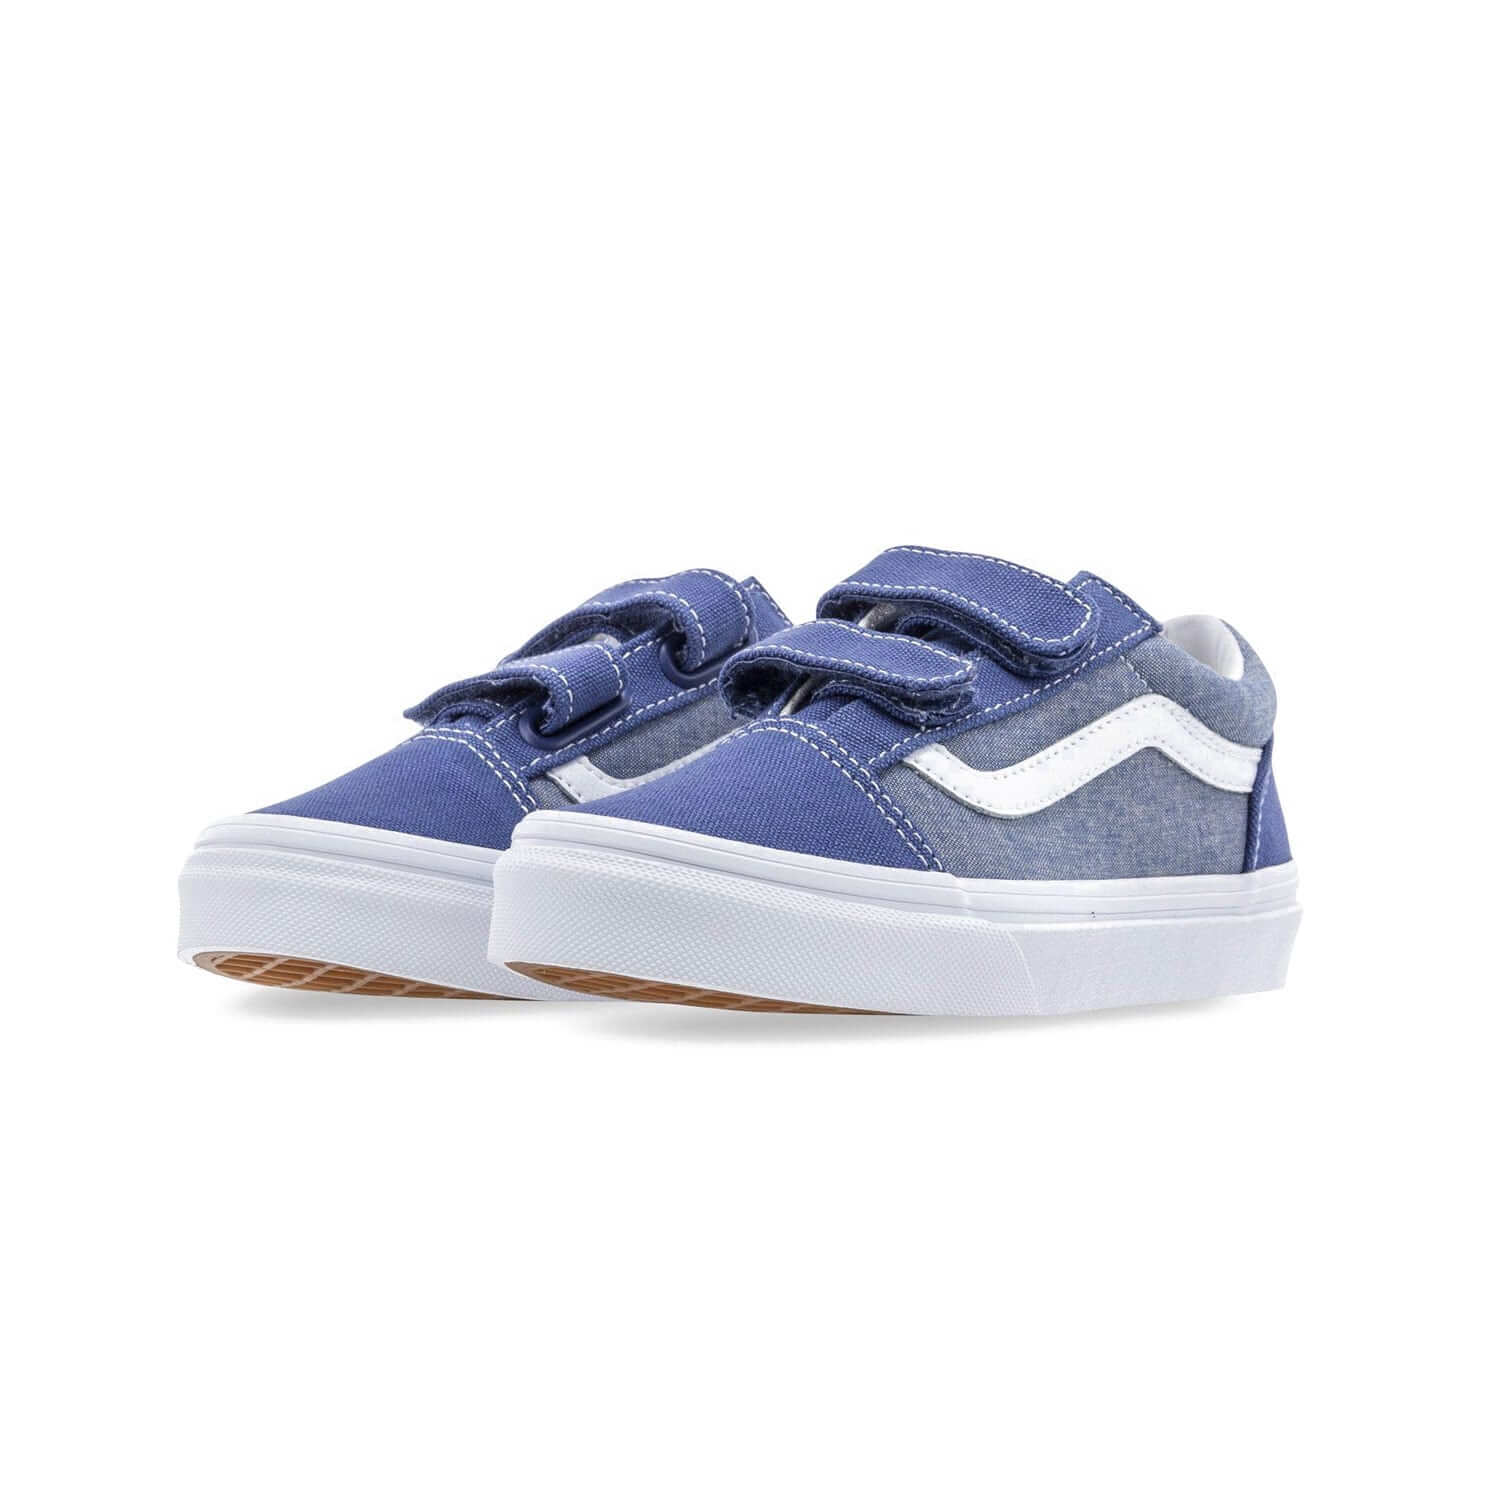 Vans Chambrary Old Skool Toddler Angle